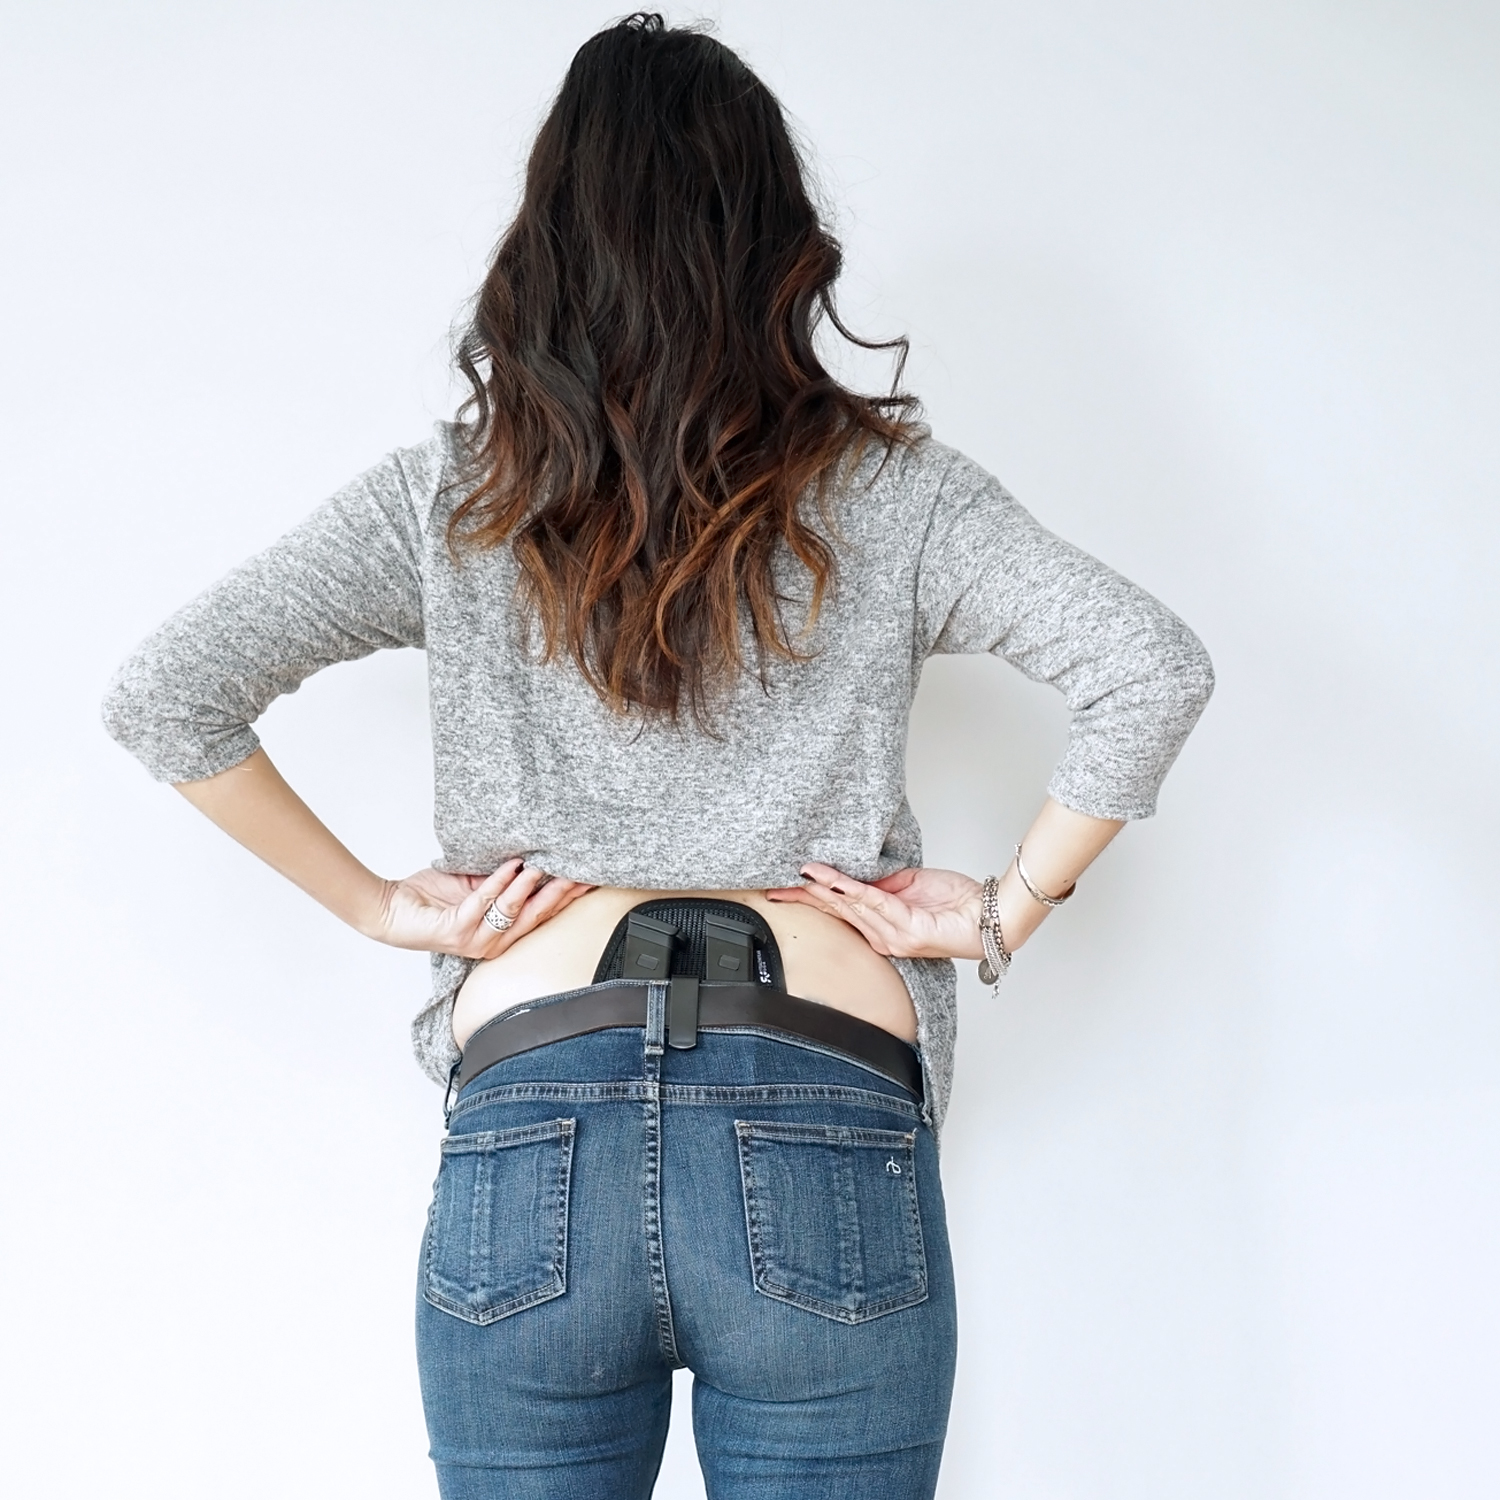 How to Concealed Carry Spare Magazines